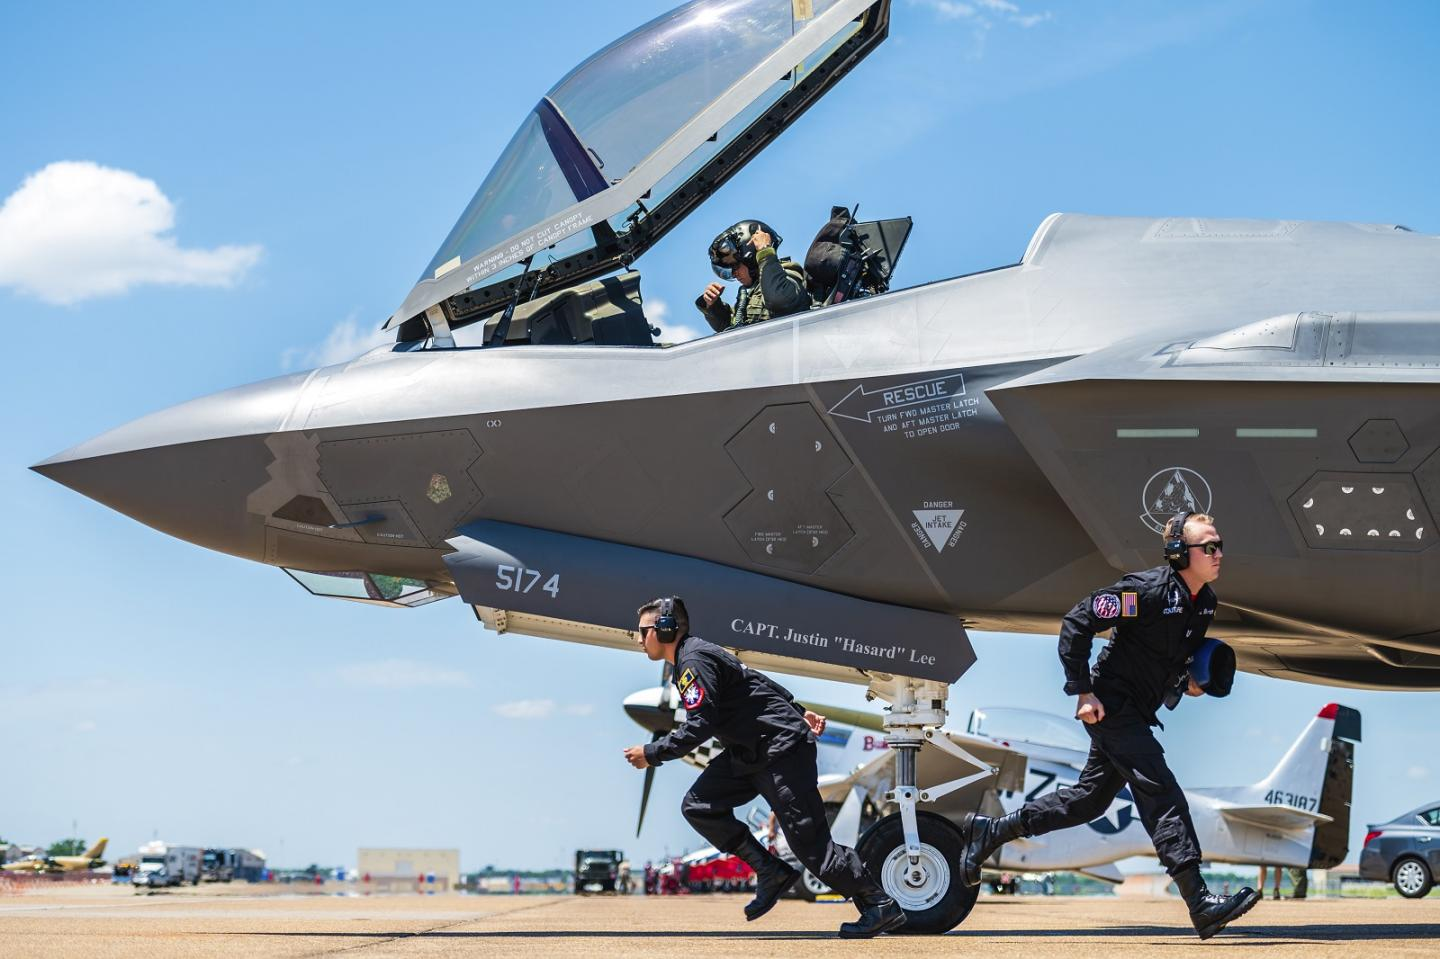 Back in 2017, an F-35 Stealth Fighter Was Killed in a Simulation